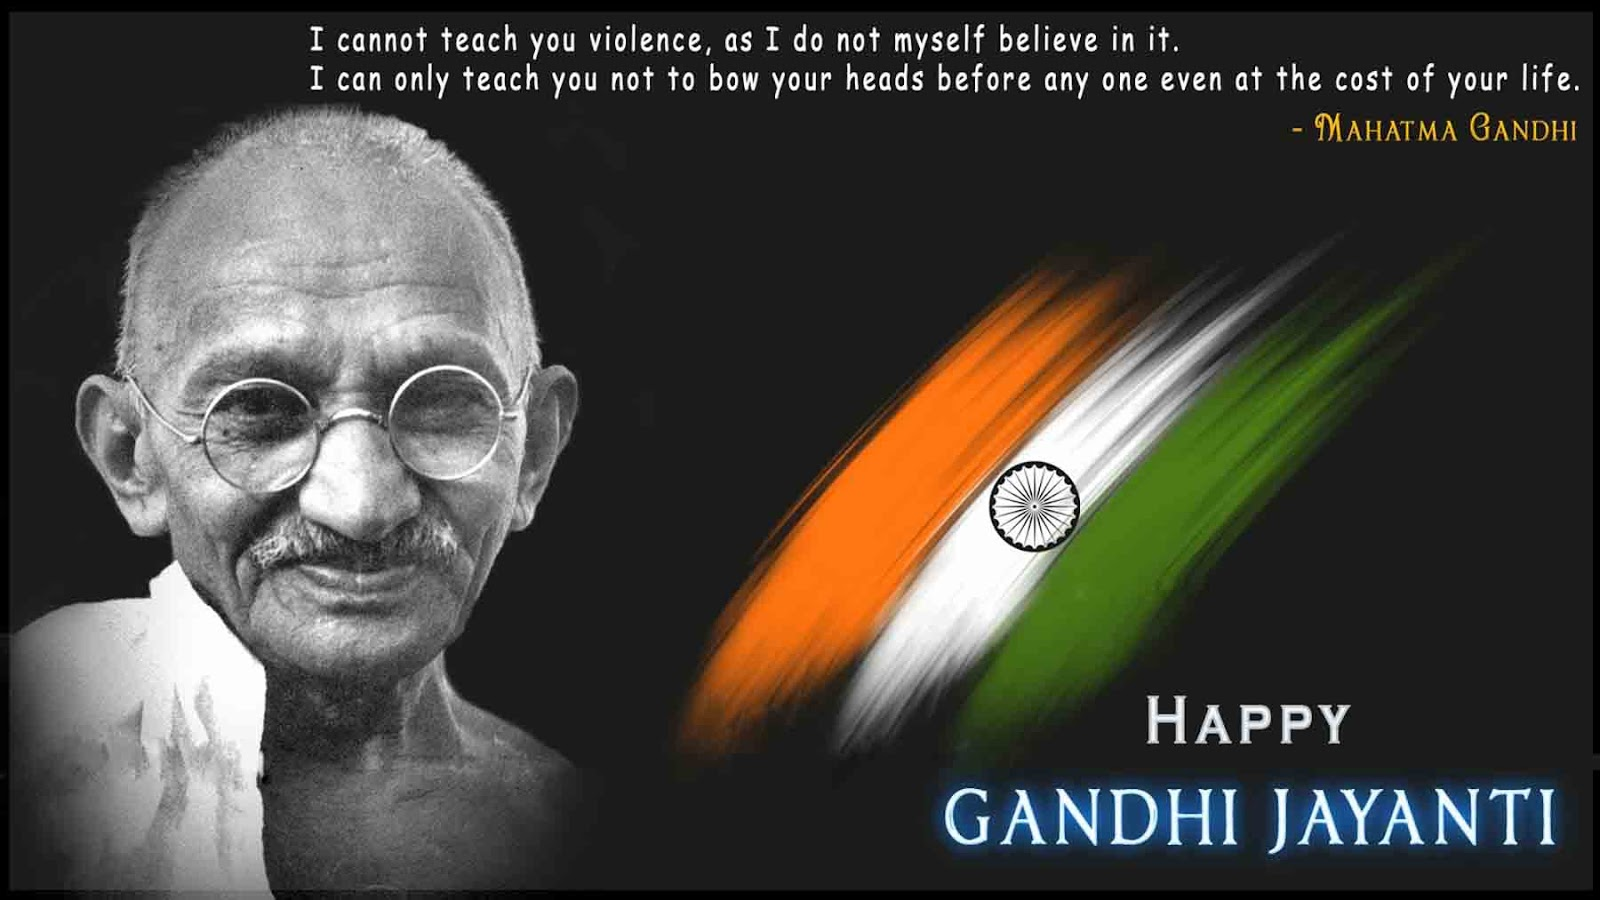 essays on gandhi jayanti Celebrate gandhi jayanti every day, says essay lauded by pm narendra modi.